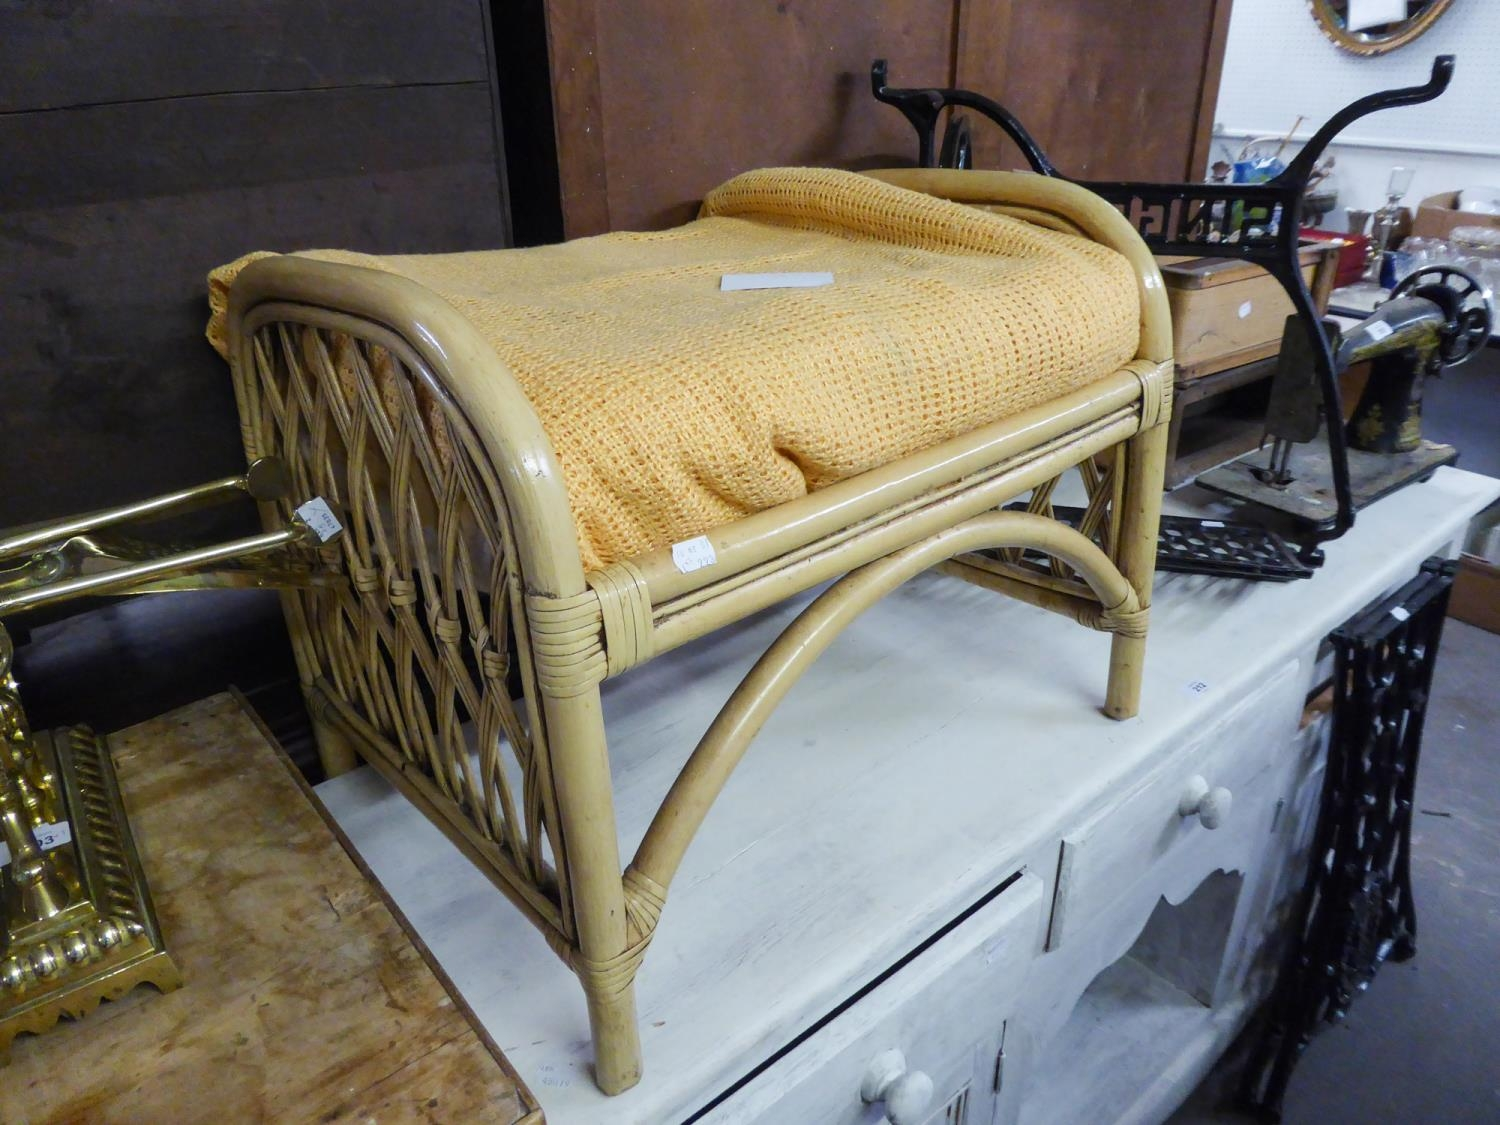 A WHITE WICKER ARMCHAIR AND COFFEE TABLE AND A WICKER STOOL (3) - Image 2 of 2